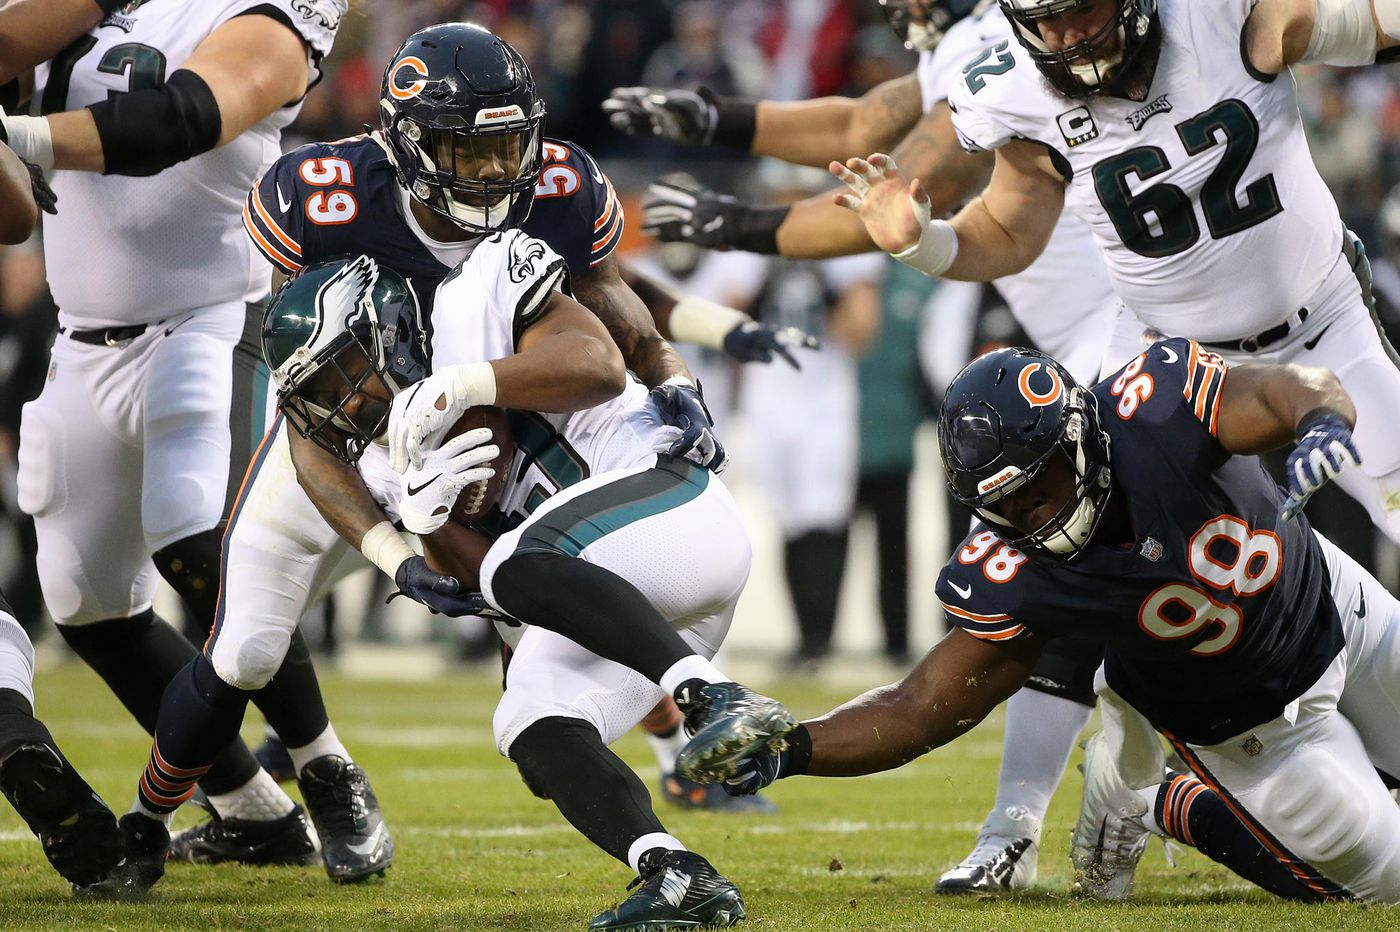 Eagles 16, Bears 15 - as it happened